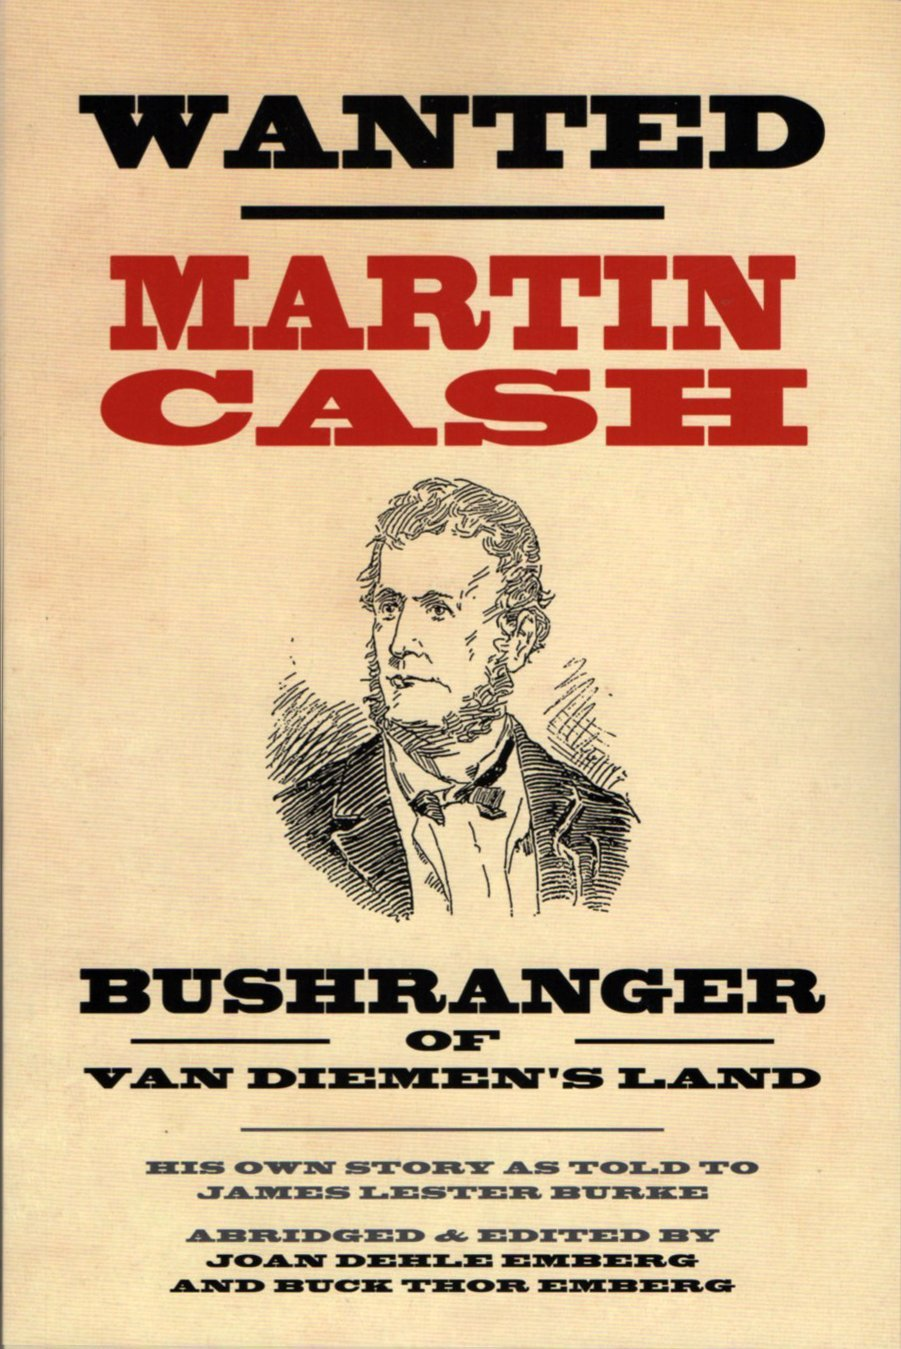 A Wanted poster for Martin Cash